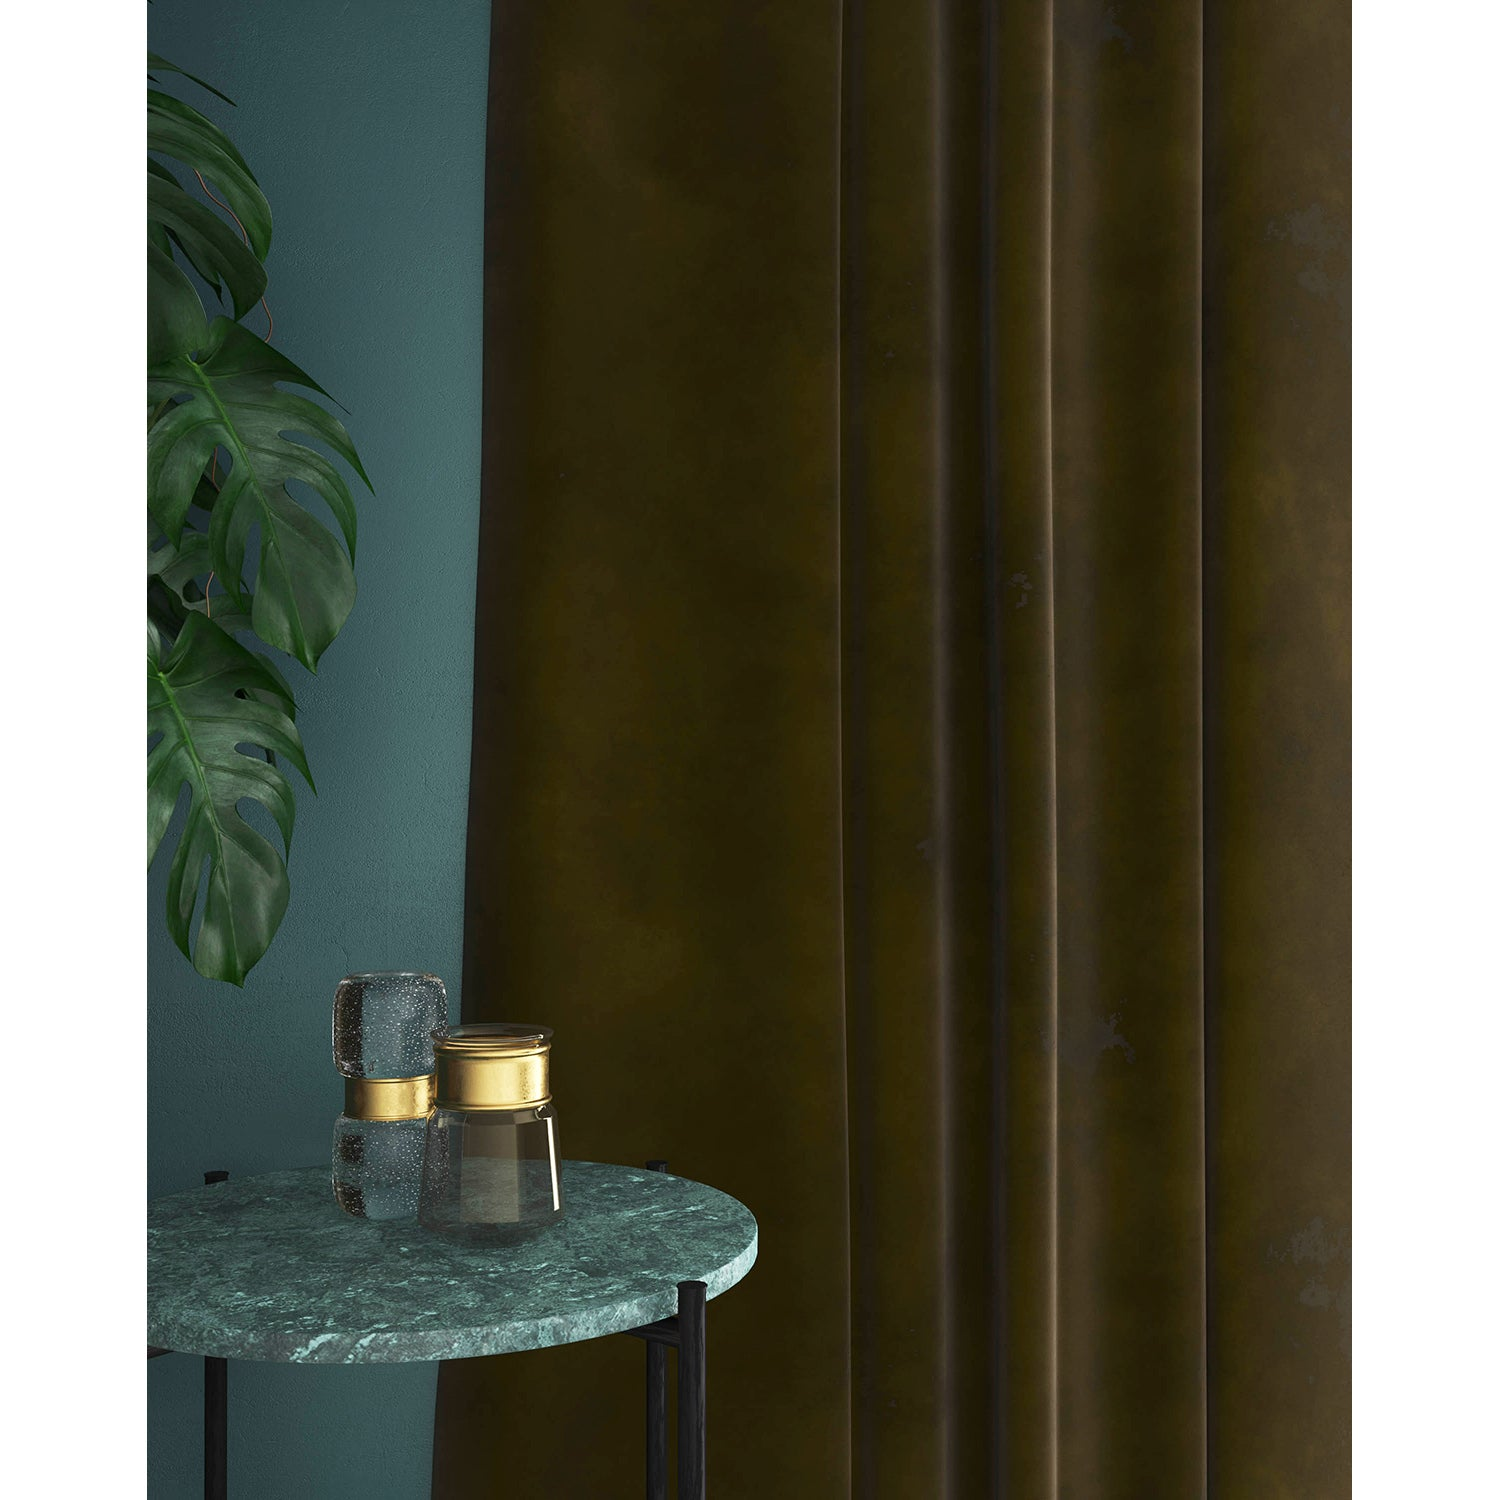 Curtain in a plain khaki green velvet fabric with a stain resistant finish